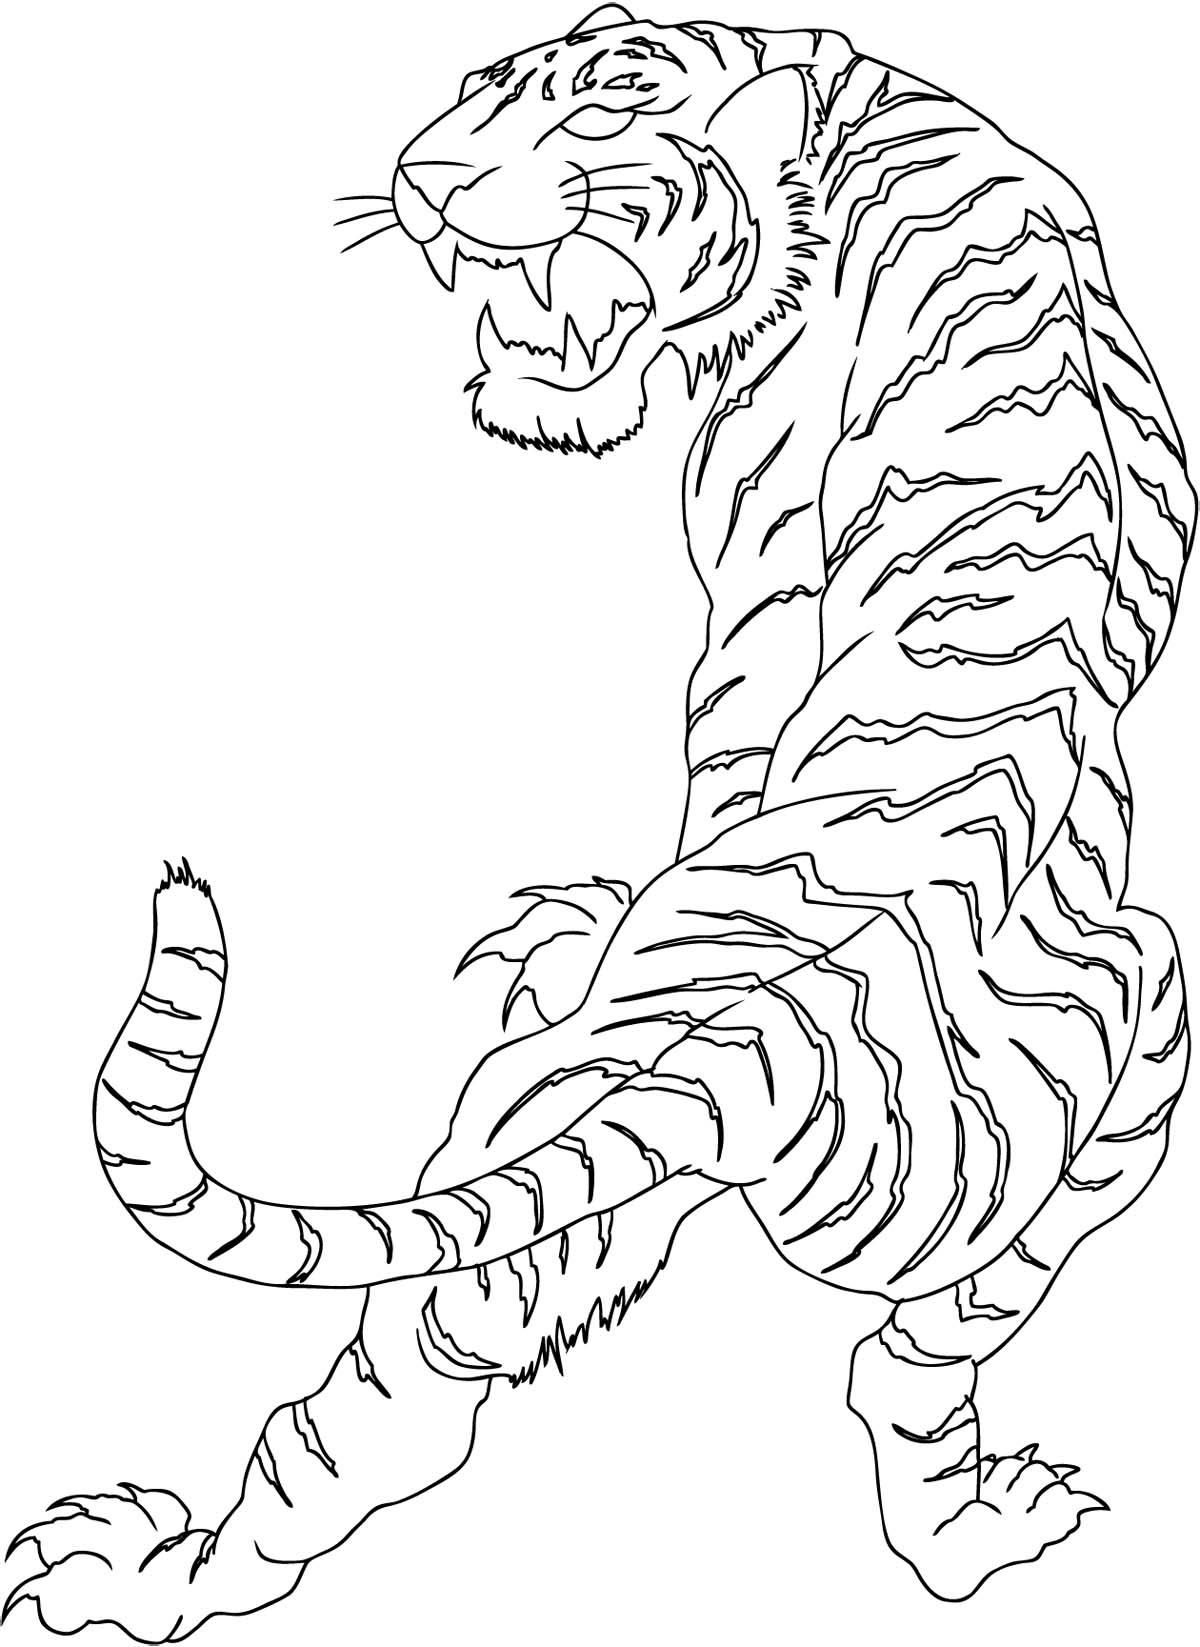 Tattoo Flash Line Drawing Converter : Indonesian white tiger drawing google zoeken dier